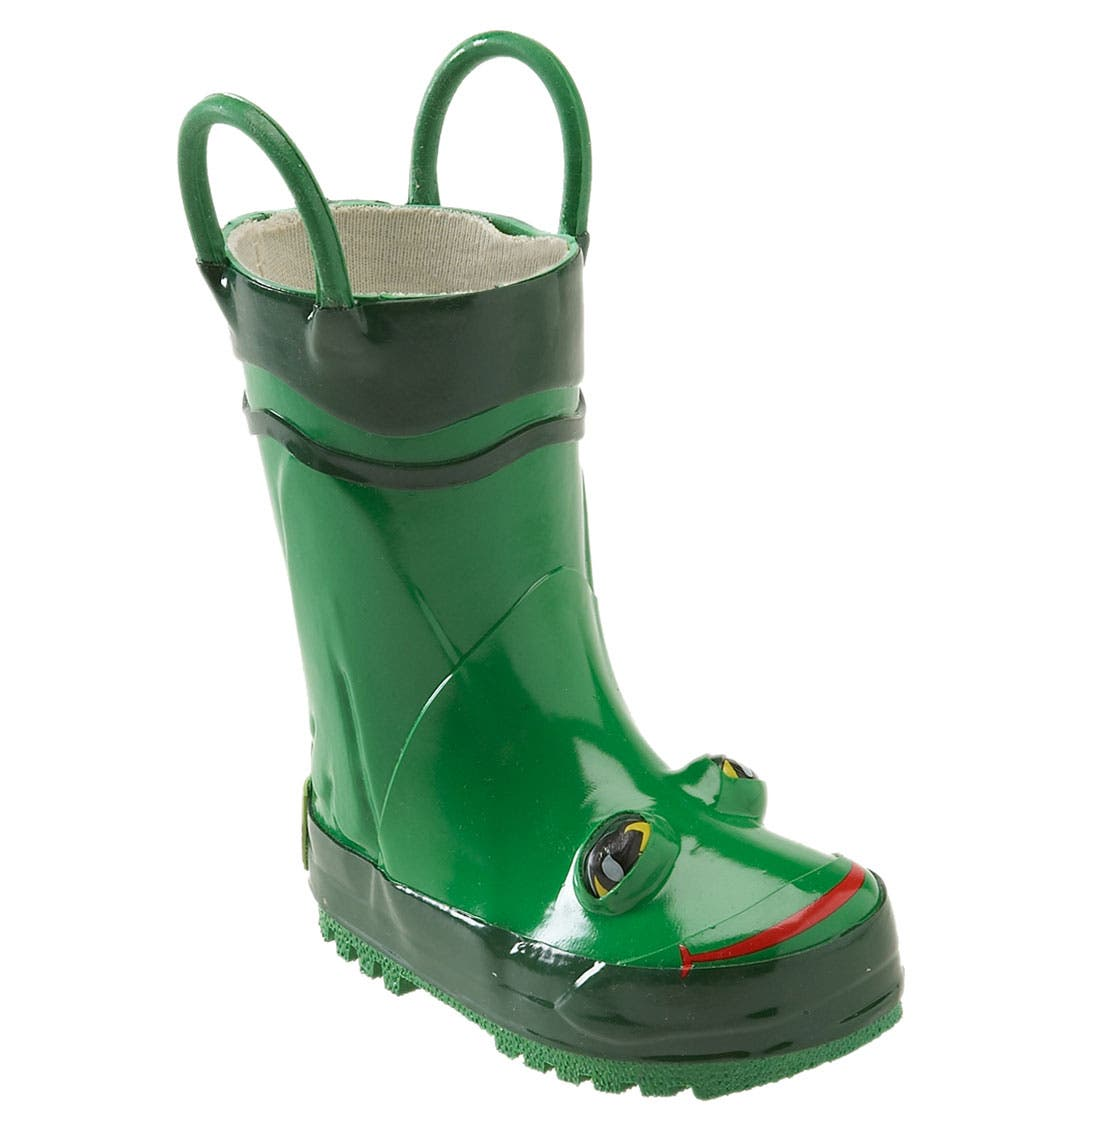 Alternate Image 1 Selected - Western Chief 'Frog' Rain Boot (Walker, Toddler, Little Kid & Big Kid)